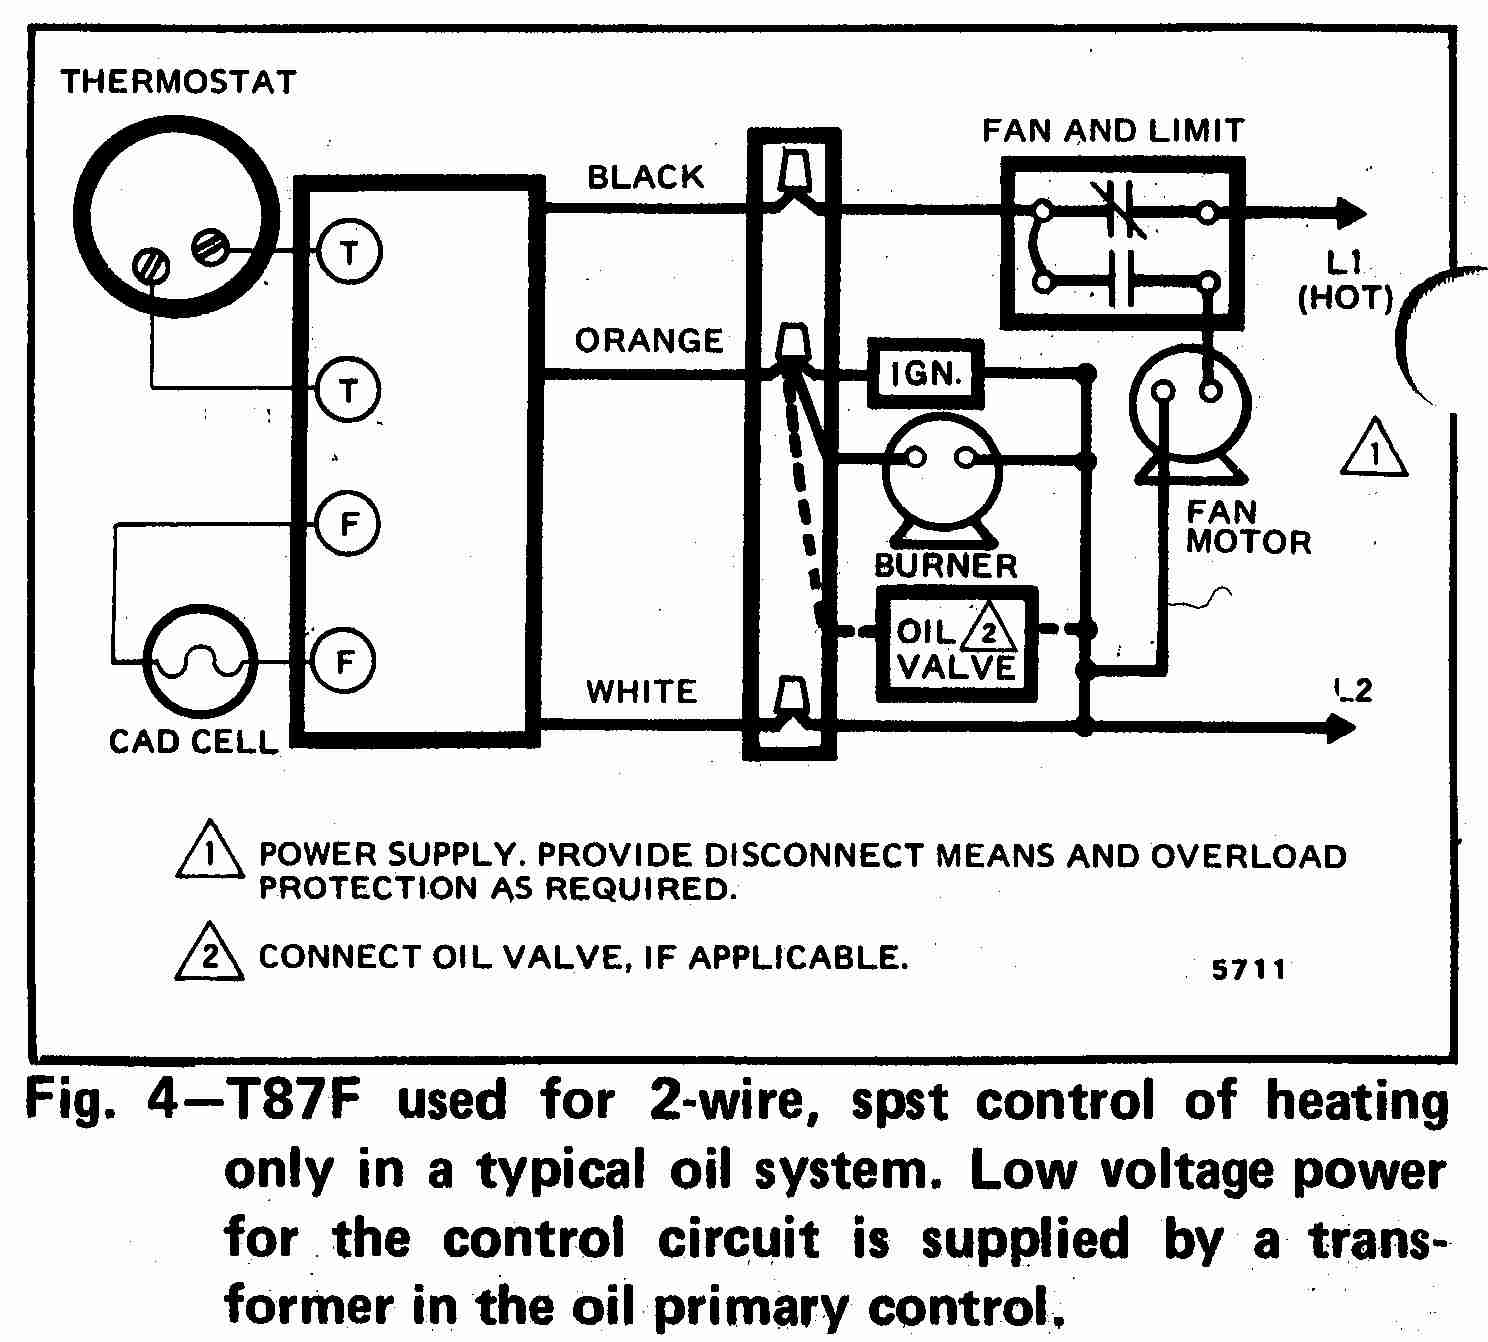 TT_T87F_0002_2W_DJF room thermostat wiring diagram boiler thermostat wiring diagram Low Voltage Wiring Guide at nearapp.co